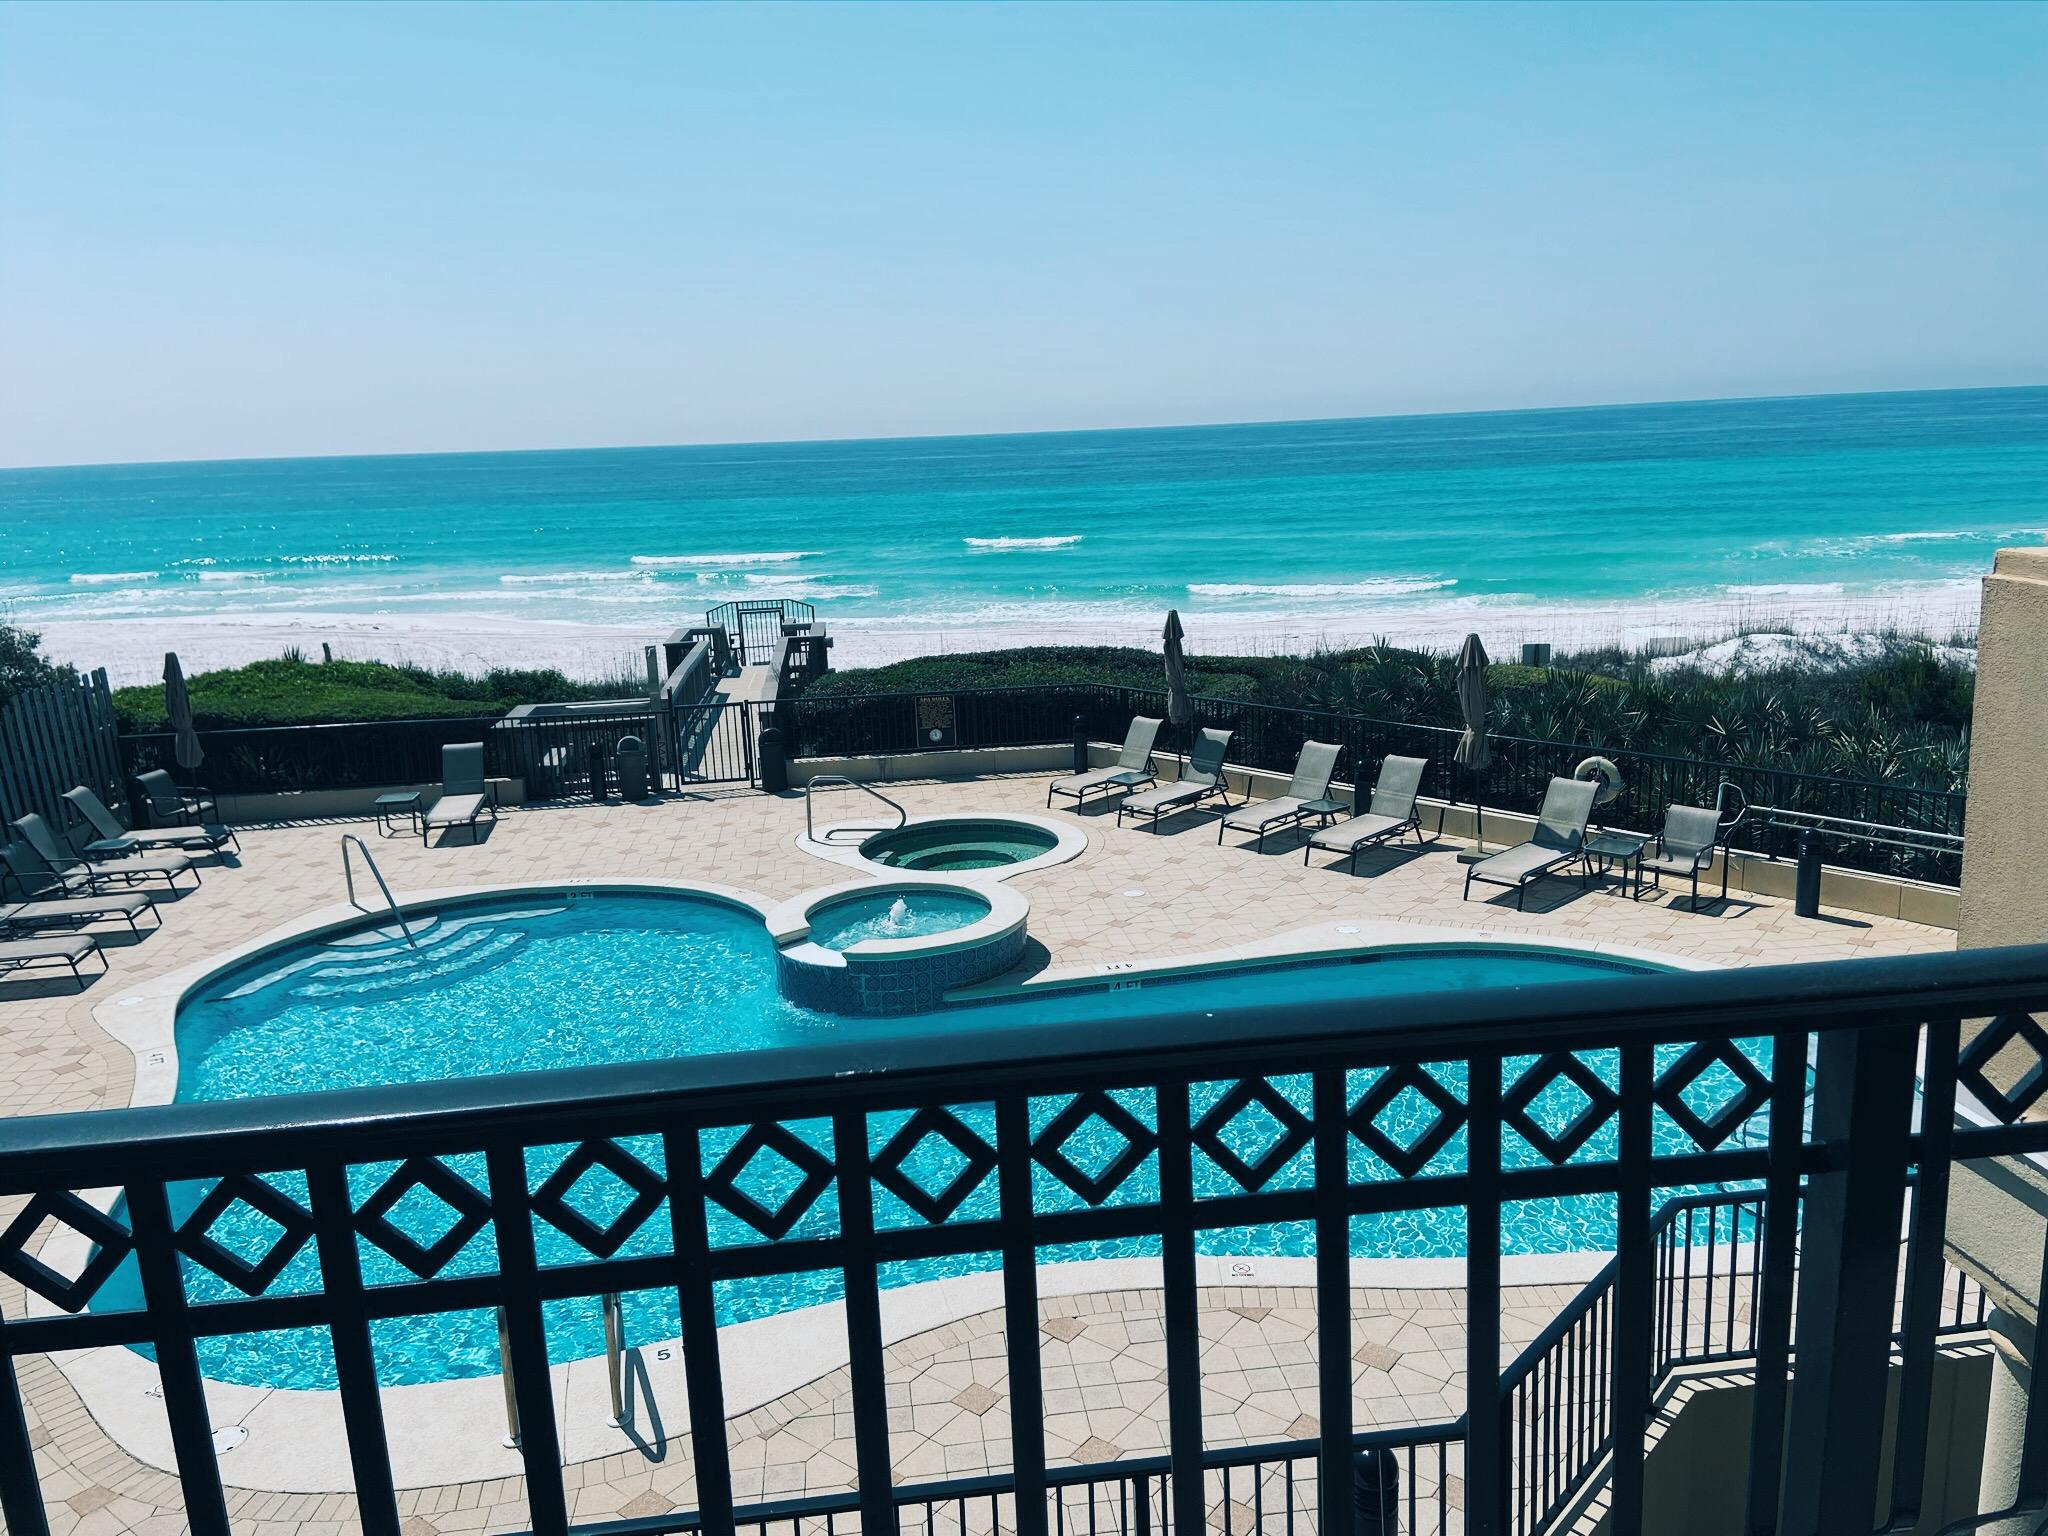 Beautiful condo in the very private gated beach front Avalon Dunes complex. There are only 16 total